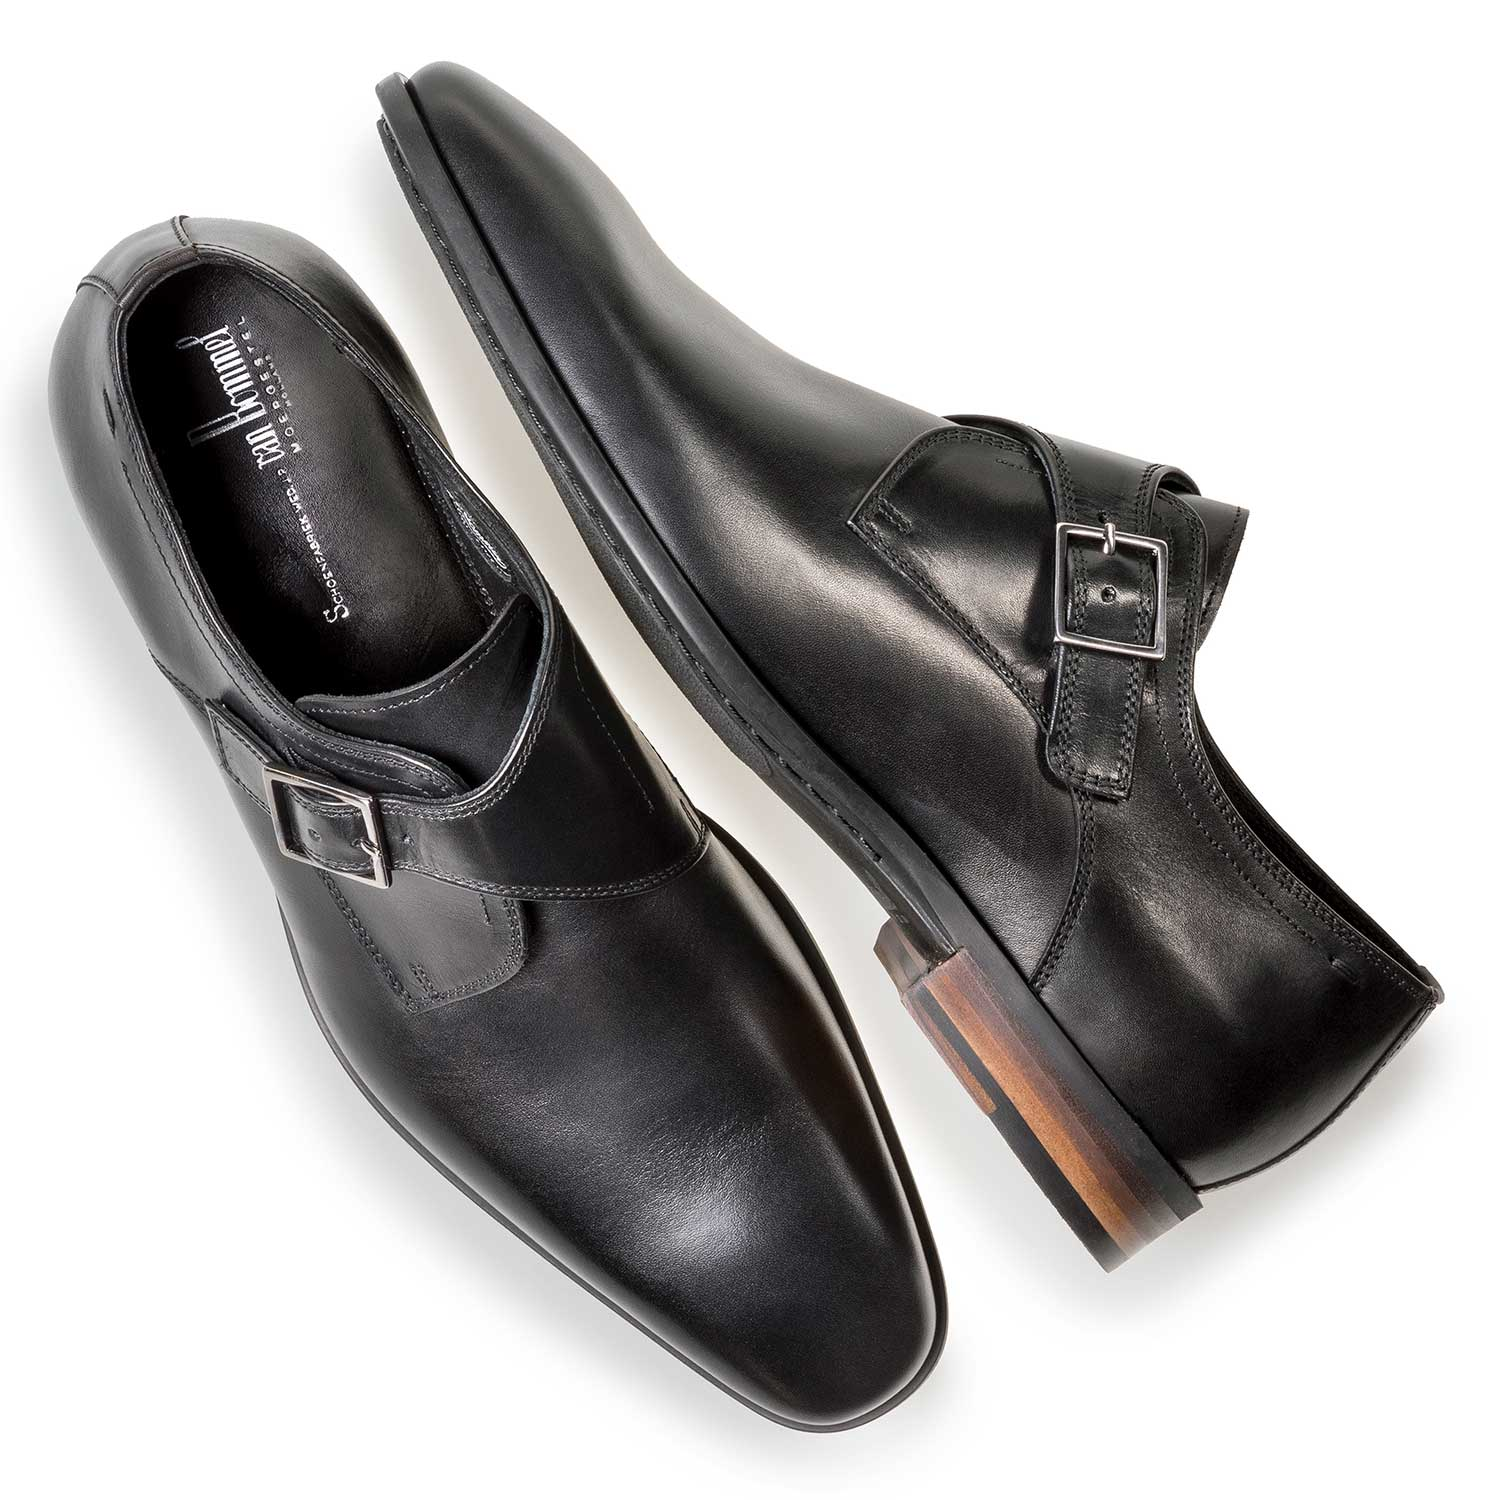 12341/05 - Black calf leather monk strap